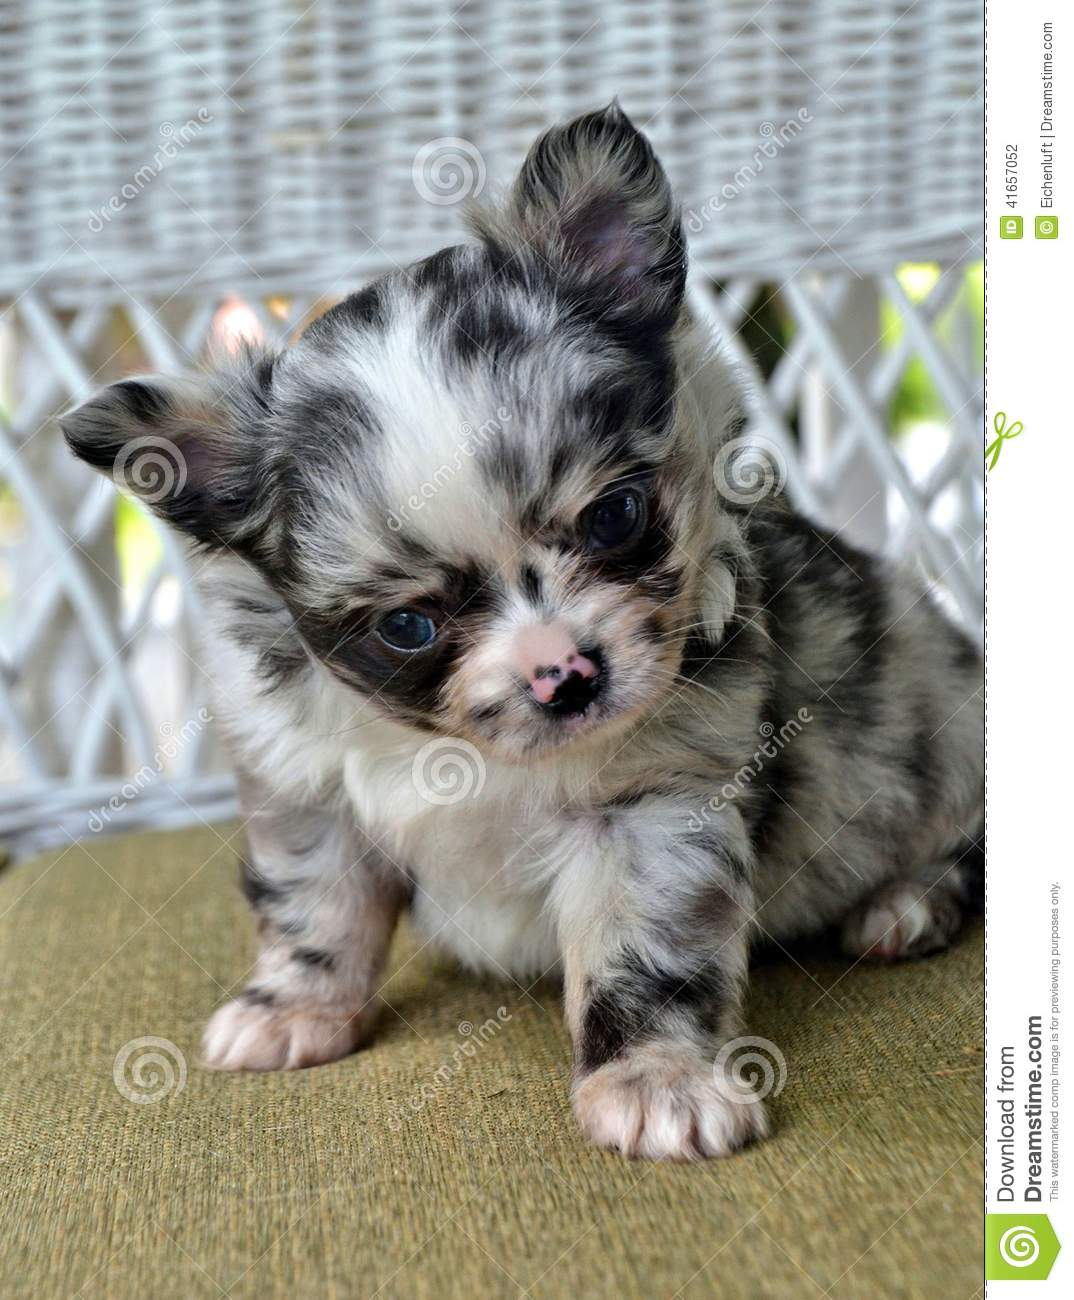 Chihuahuas 26 Stock Photo Image Of Soft Blue Coated 41657052